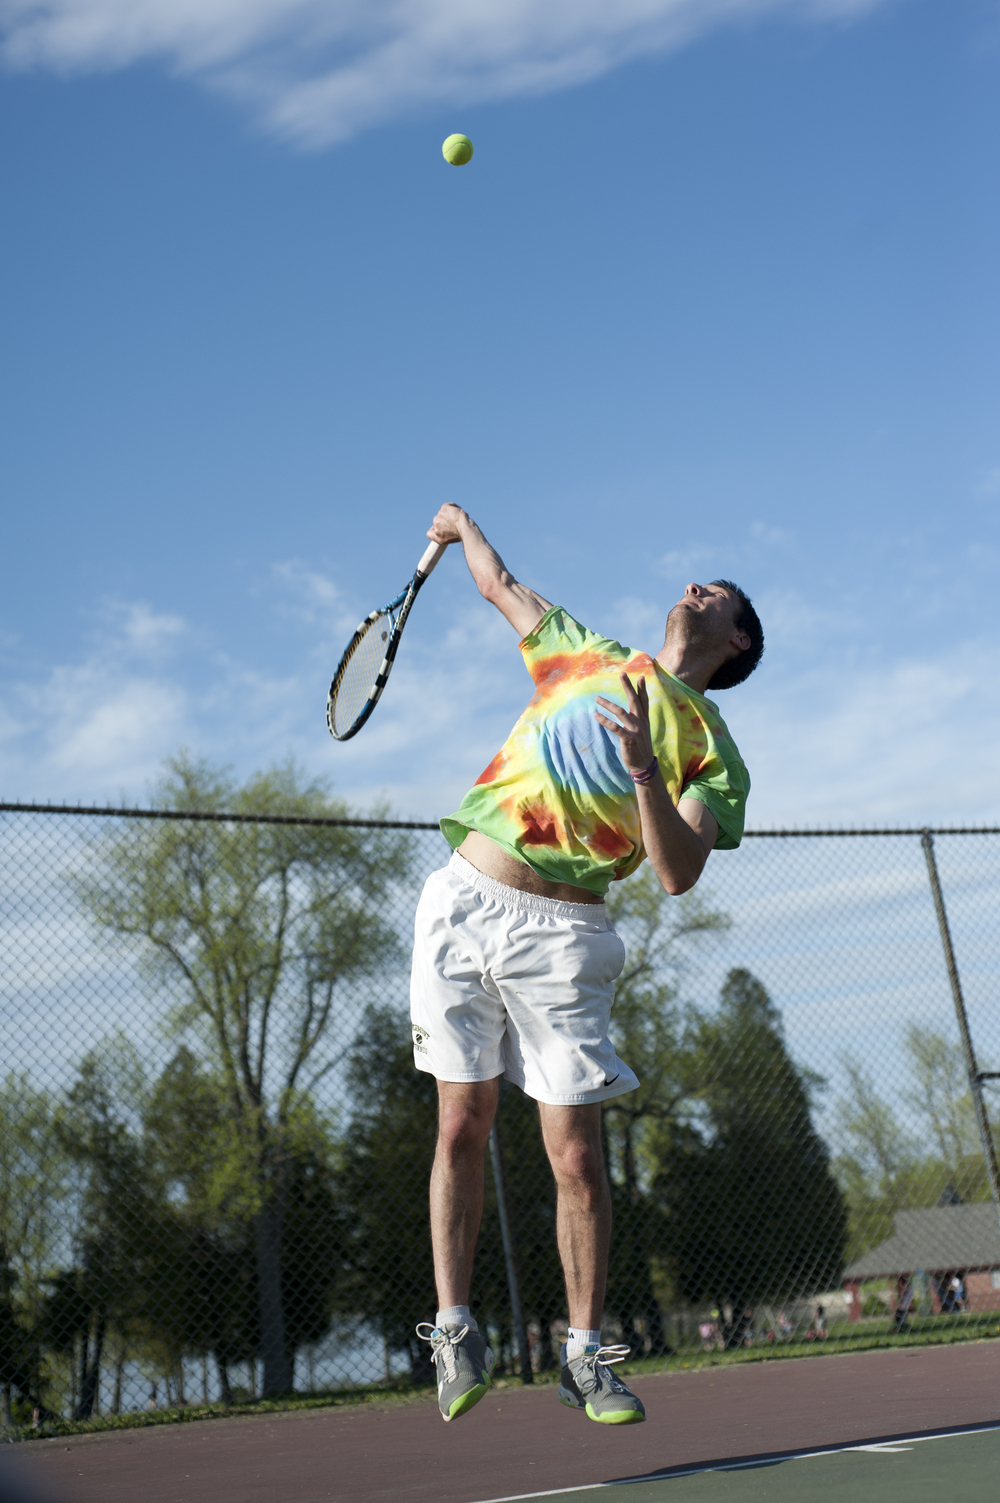 Alumnus Caleb Fields serves the ball at Oakledge Park May 21, 2014. Fields was a member of the club tennis team at UVM while in college.